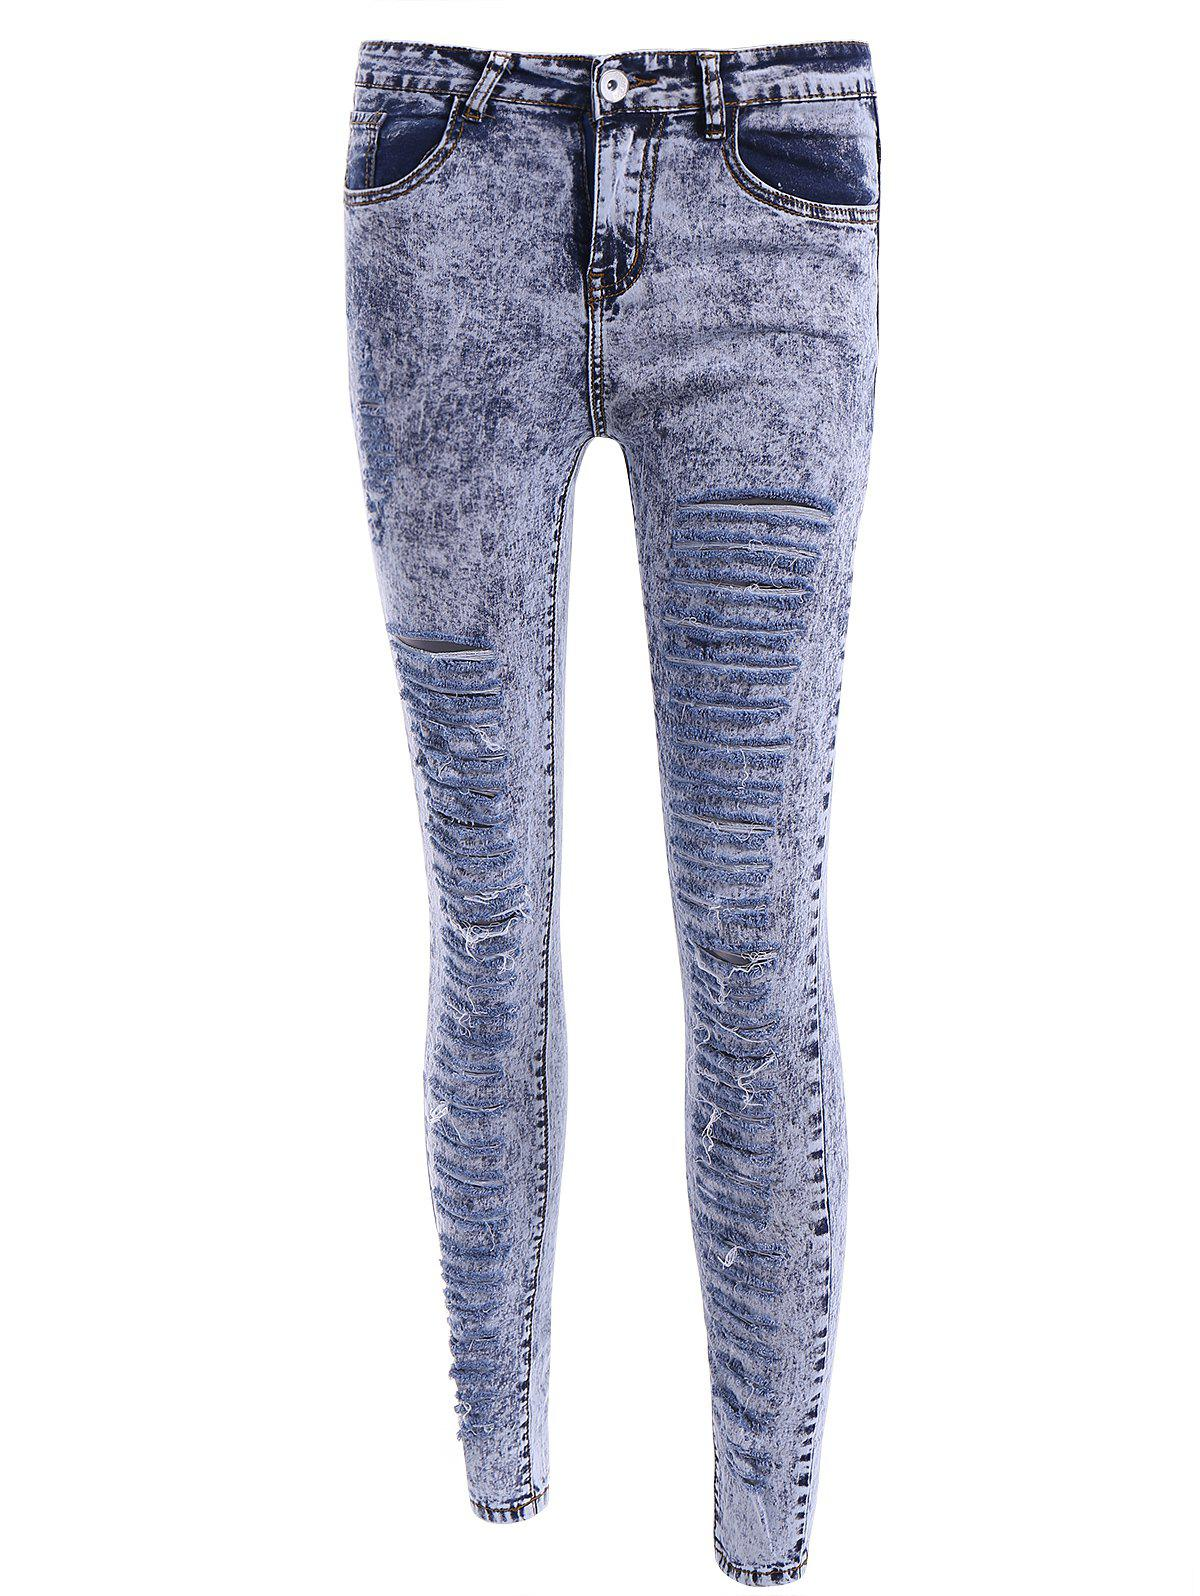 Latest Stylish High-Waisted Skinny Ripped Women's Jeans